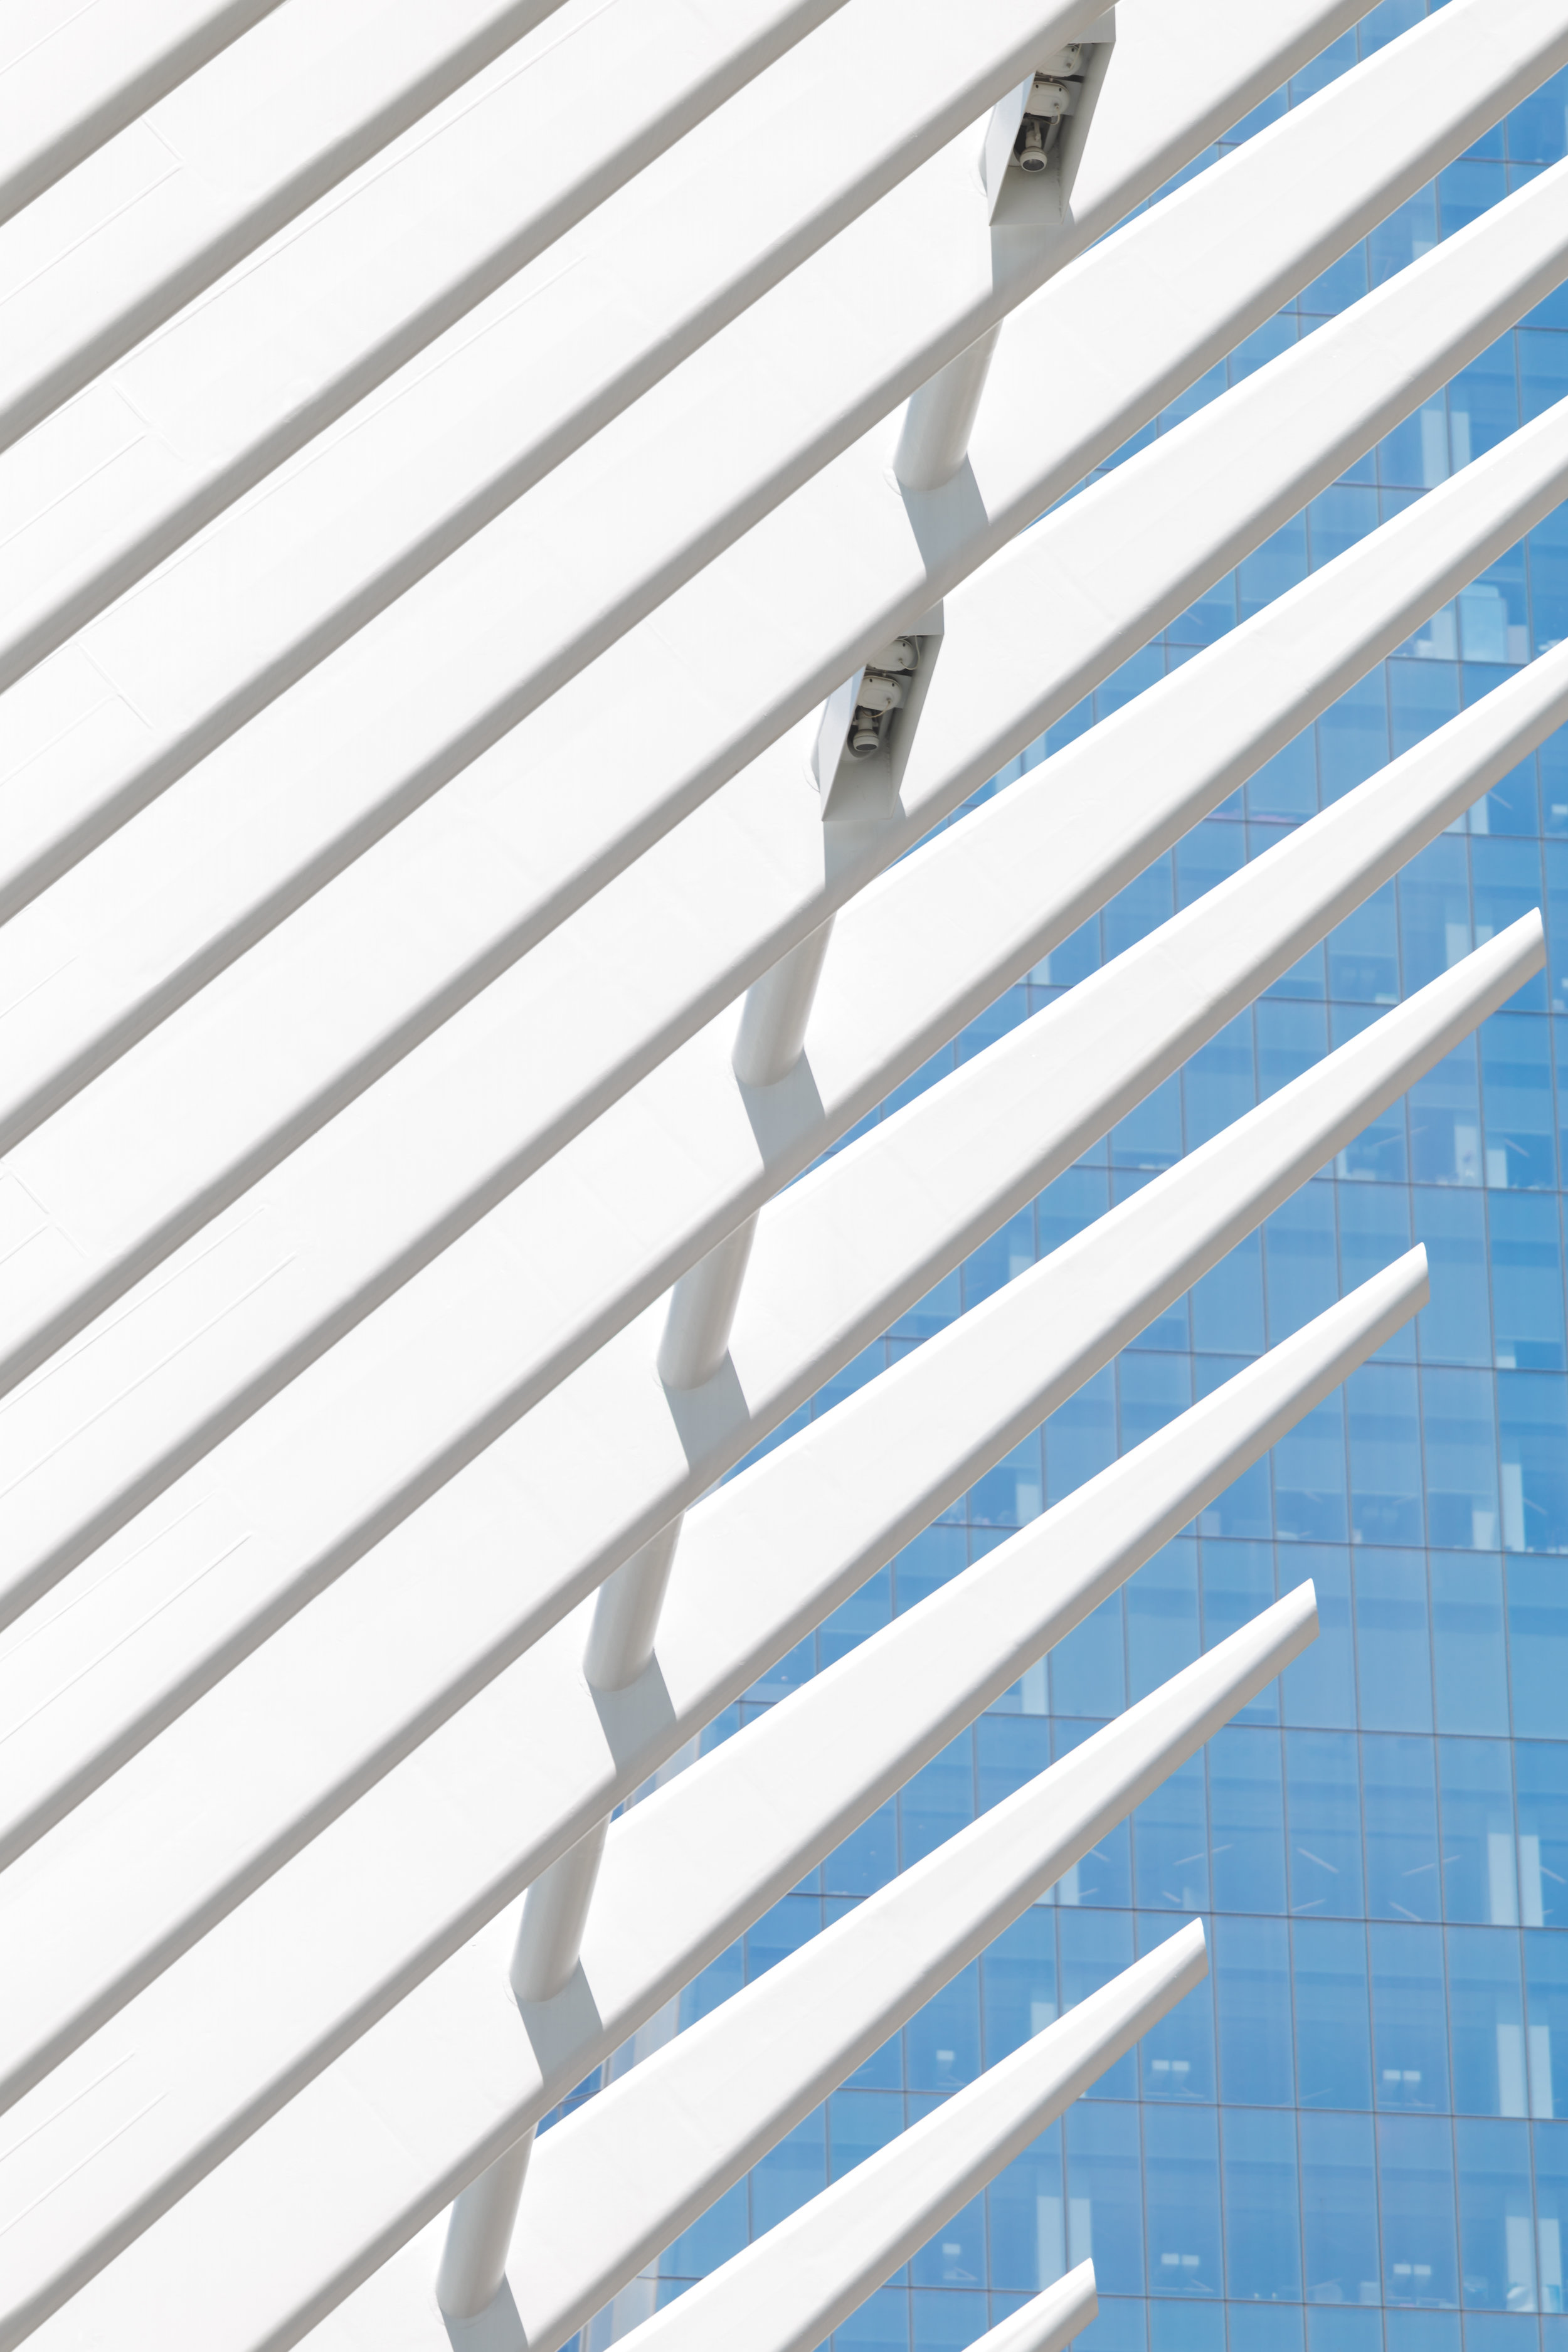 This adventure is mainly focusing on the architecture of the Oculus because ... its just astonishing!The approximately 14 billion dollar train station was designed by Spanish architect Santiago Calatrava and I must say, great job. This station is composed of both businesses with an open mezzanine under the National September 11 Memorial plaza.This is just one of the many beautiful works of art that Calatrava has created. Two of my favorite buildings created by Calatrava are the Turning Torsa and the Palau de les Arts Reina Sofia. If you are ever in Malmö, Sweden or Valencia, Spain you must see these two buildings. Hey, you never know, maybe you'll see my girlfriend and I there one day.